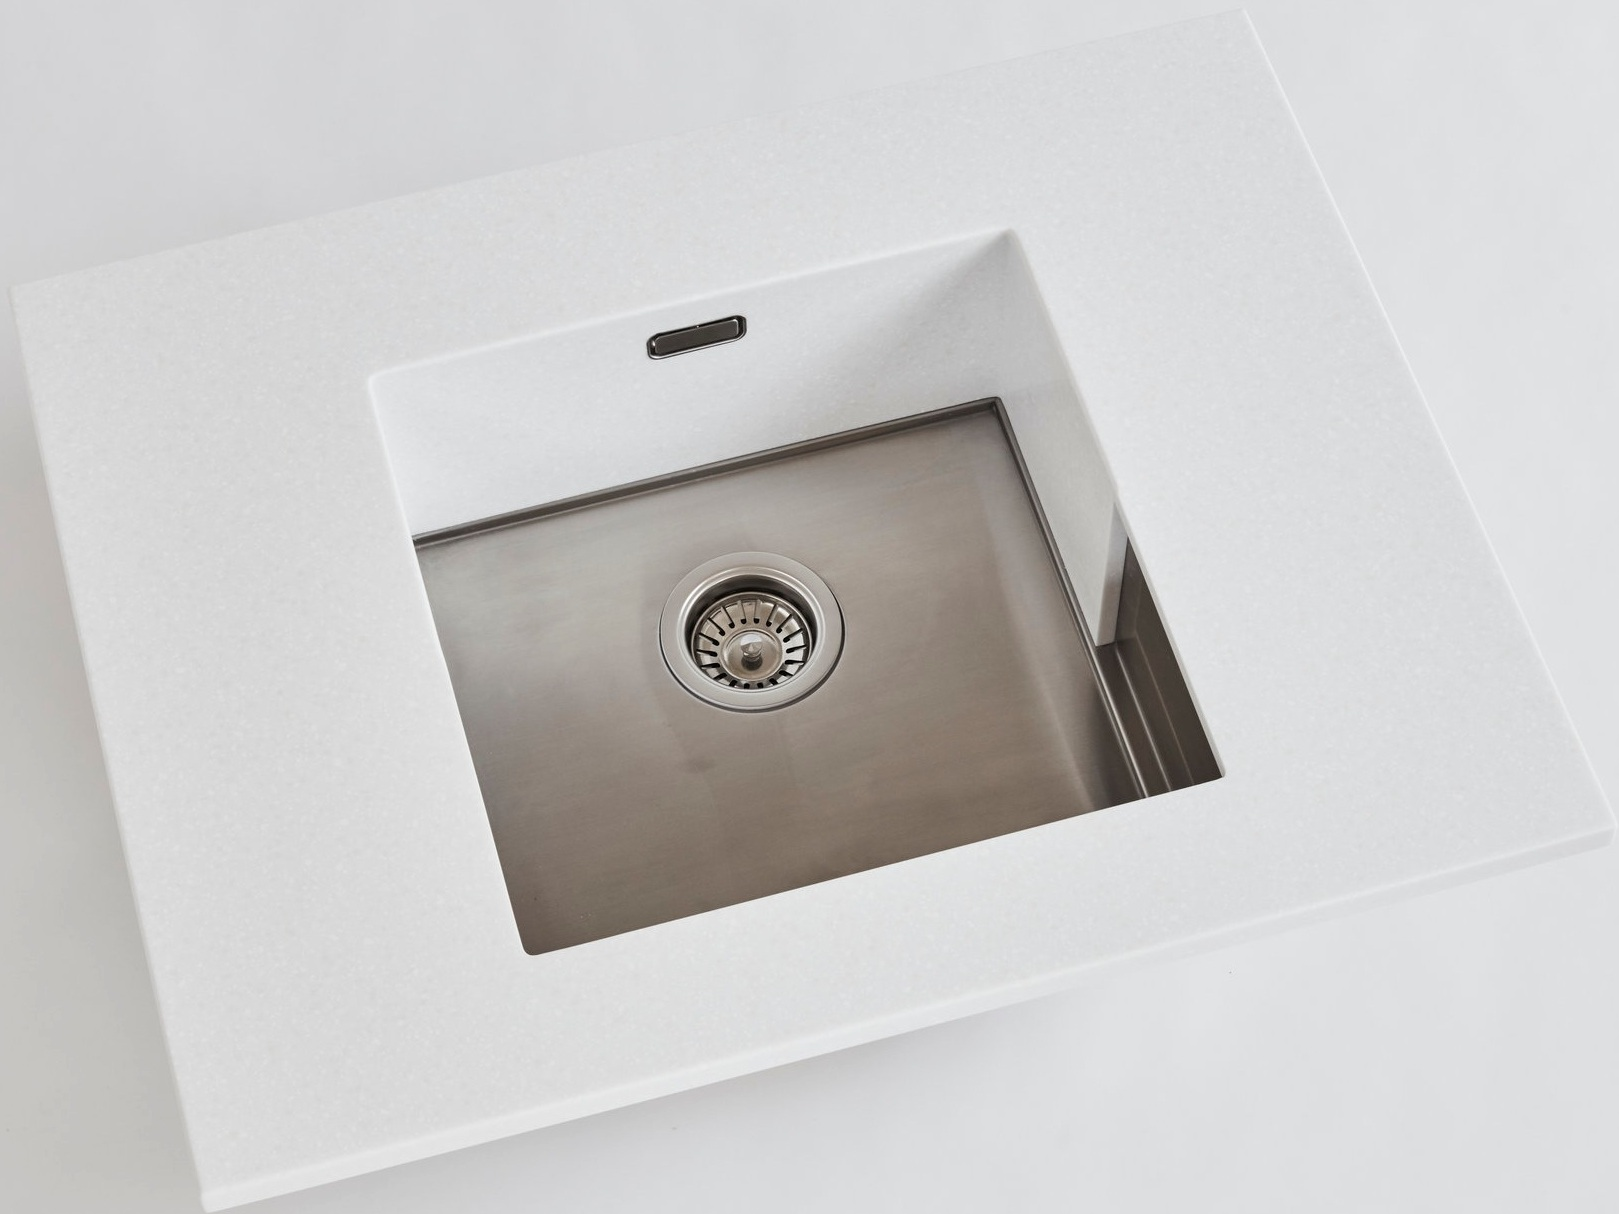 Introducing: SYNCRO - INLAY STAINLESS STEEL SINKS